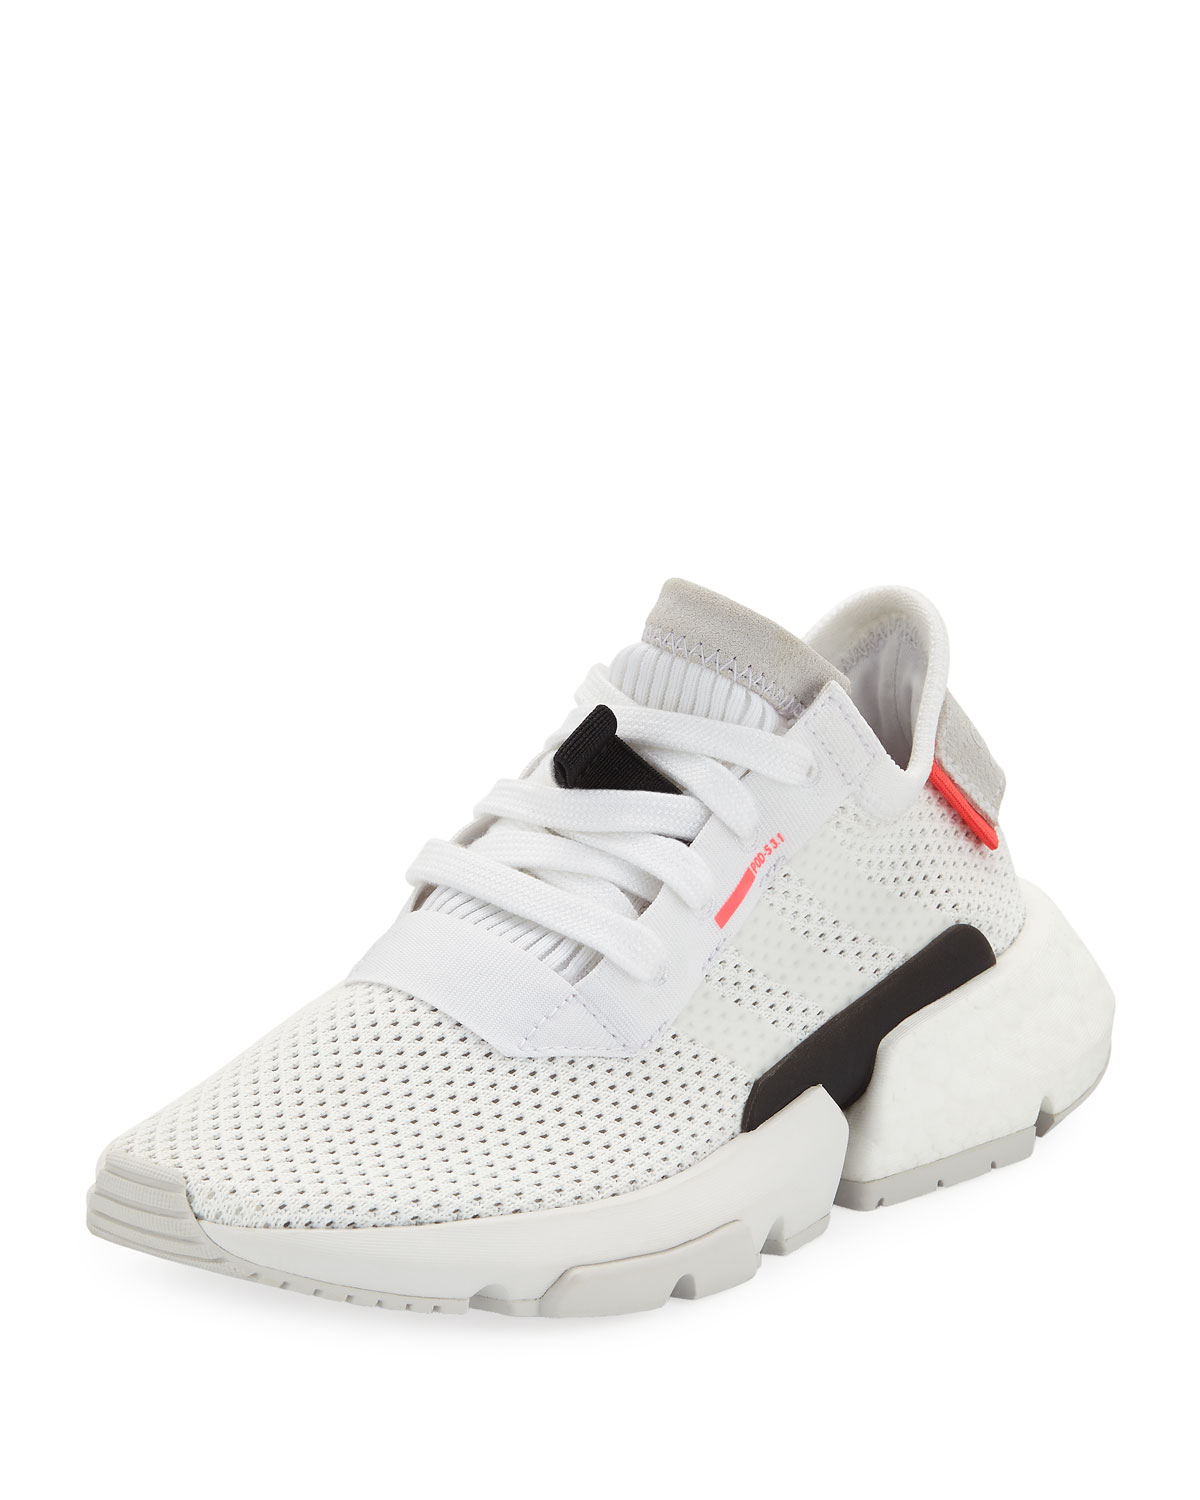 8b0c0bab5ab0 Adidas POD-S3.1 Knit Lace-Up Trainer Sneakers